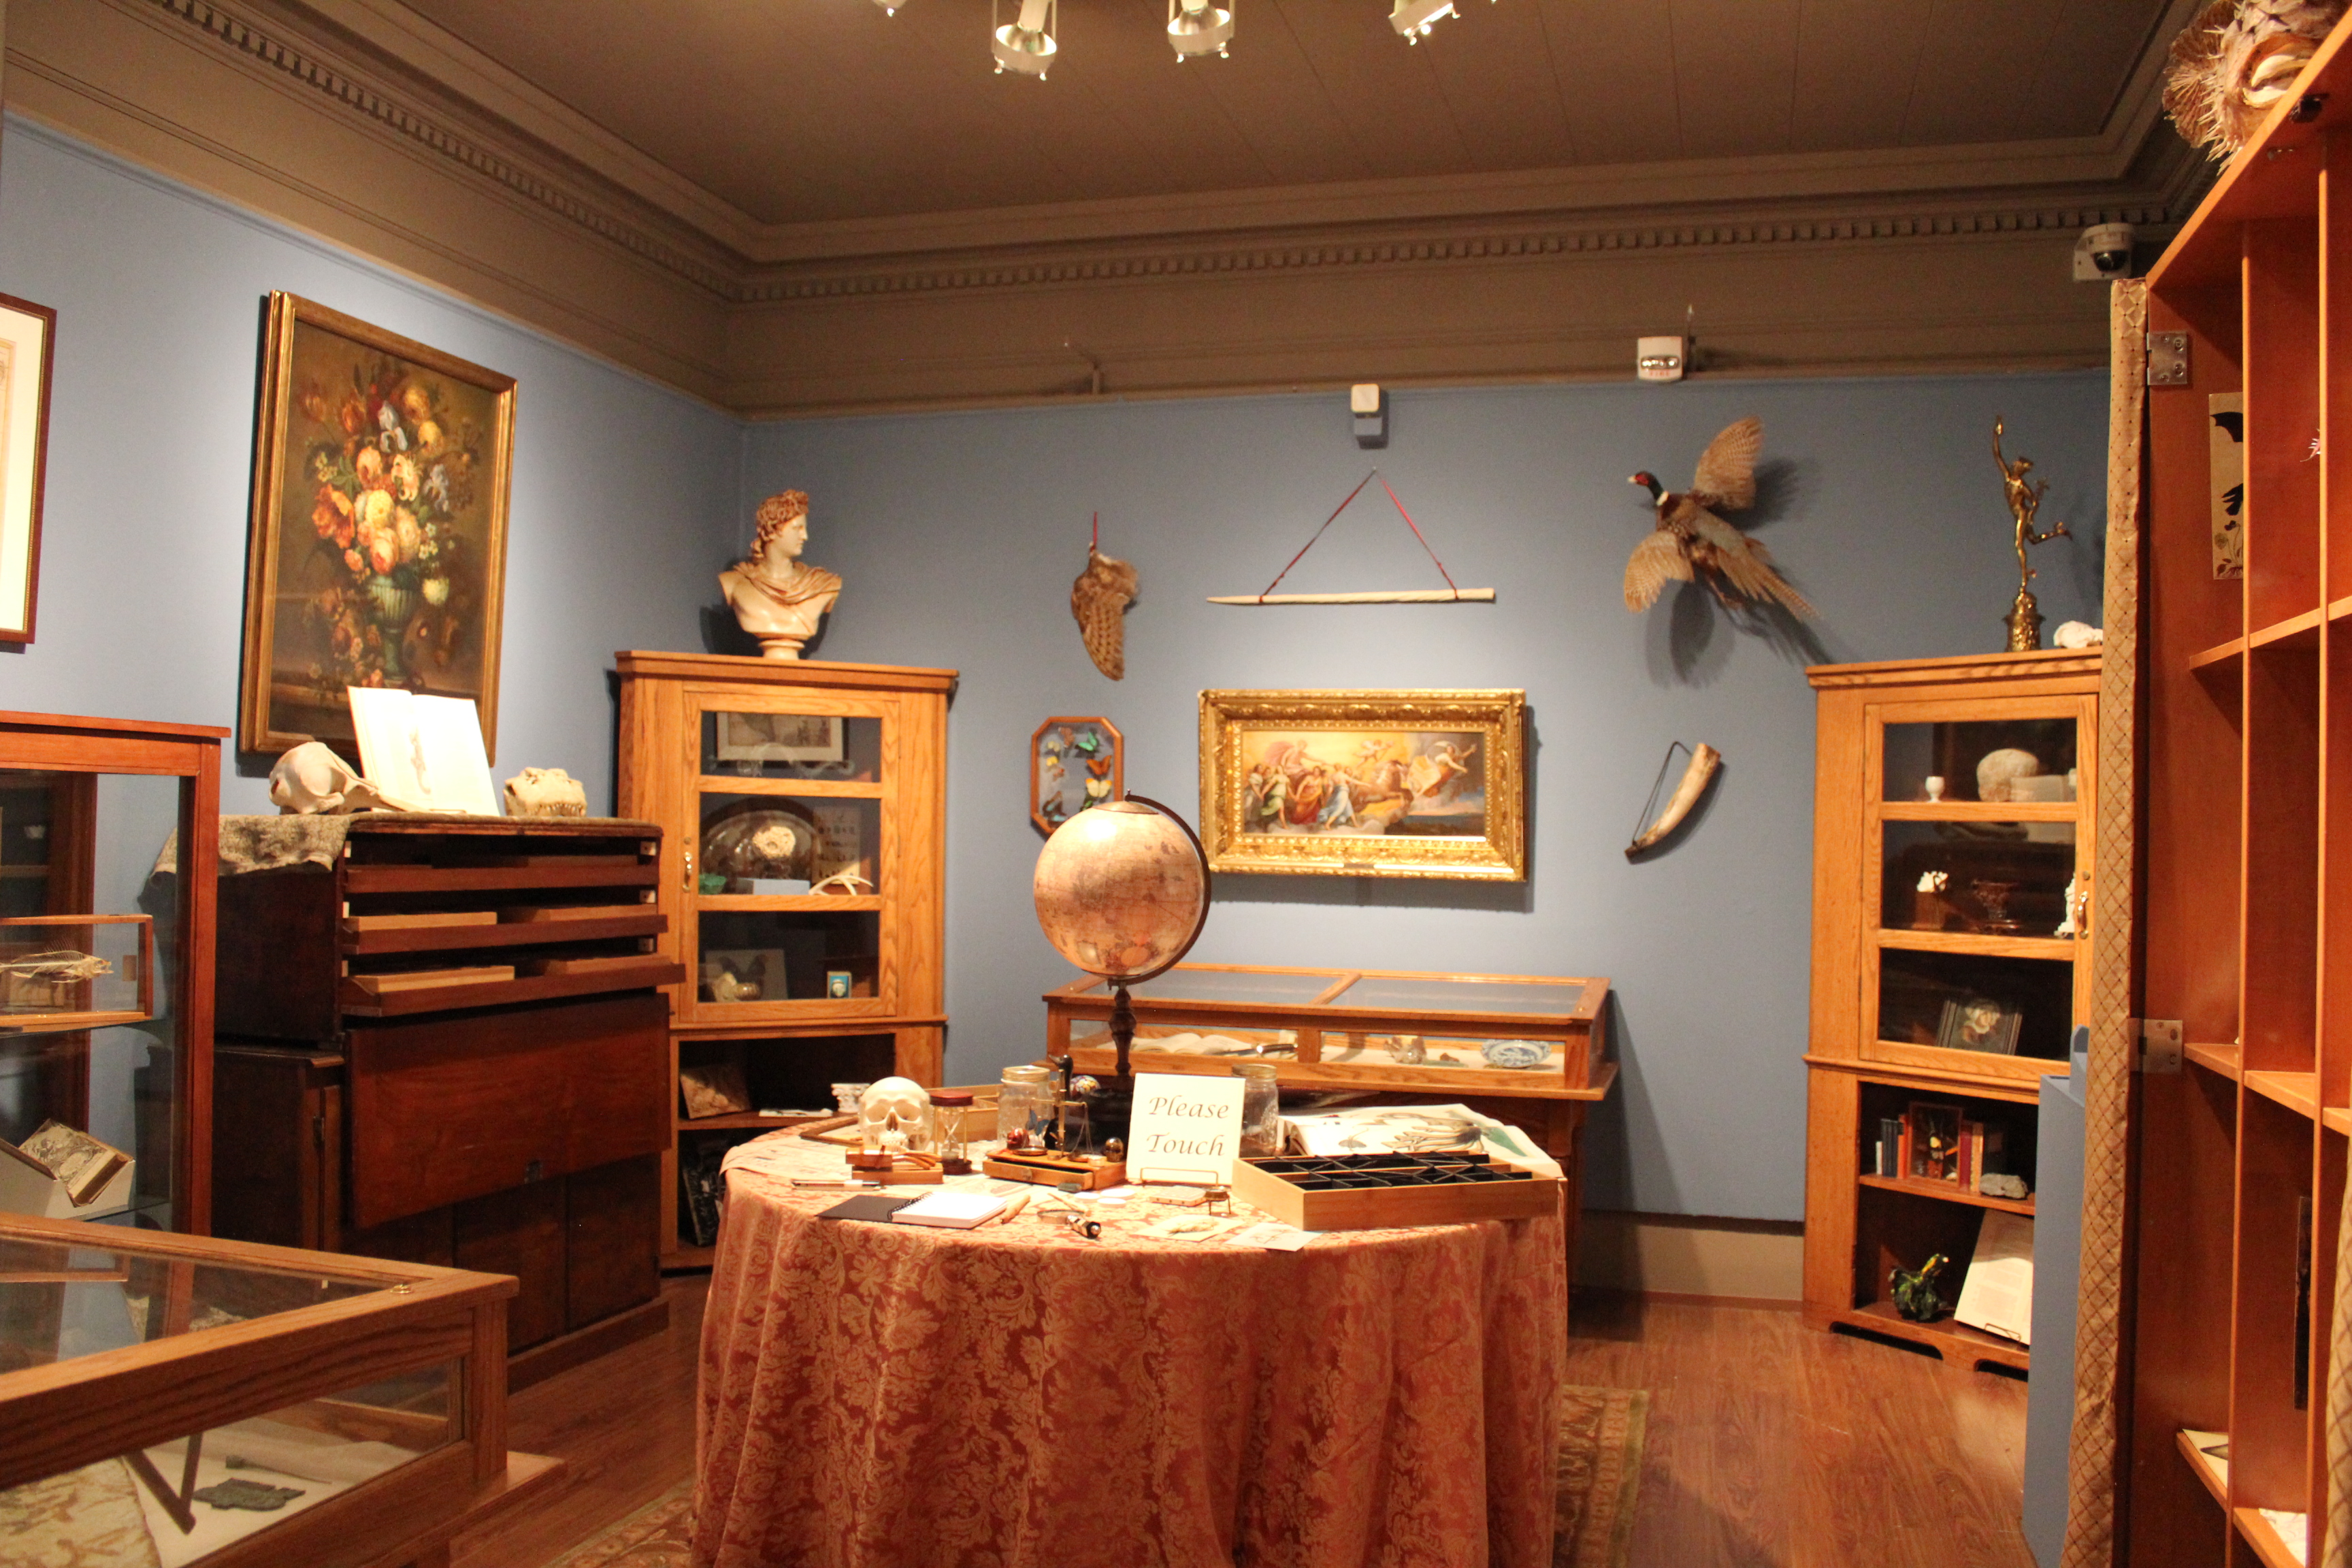 The Wonder Room exhibit (Photo courtesy of project website)